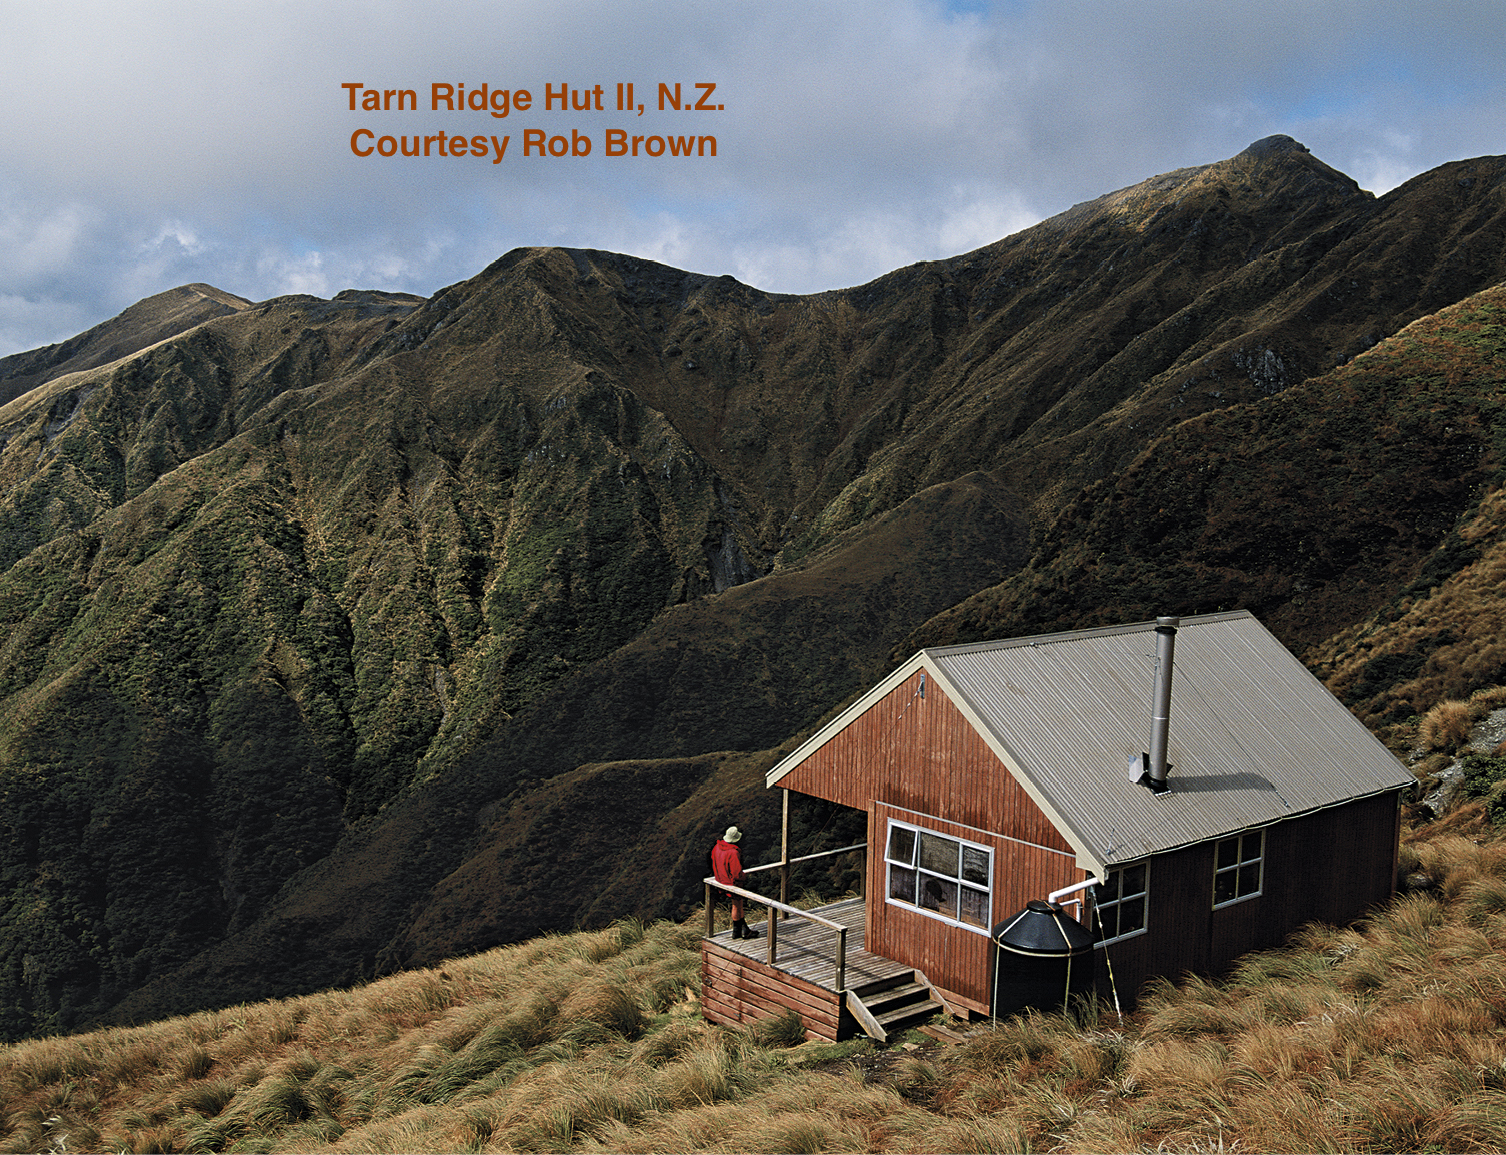 Tarn Ridge Hut, 16 bunk replacement high mountain built by DOC